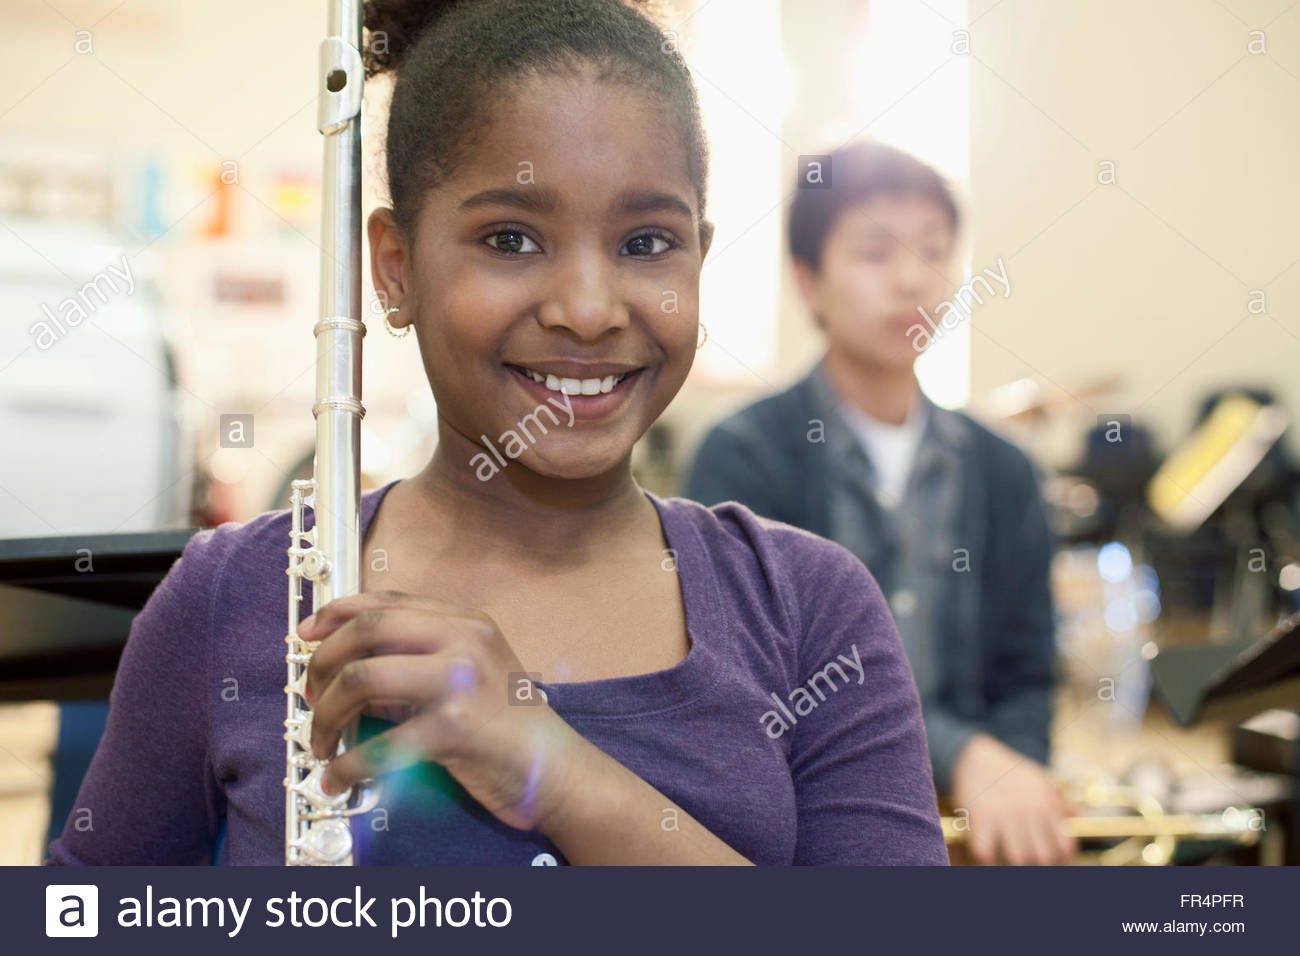 middle school student holding flute in school band - Stock Image